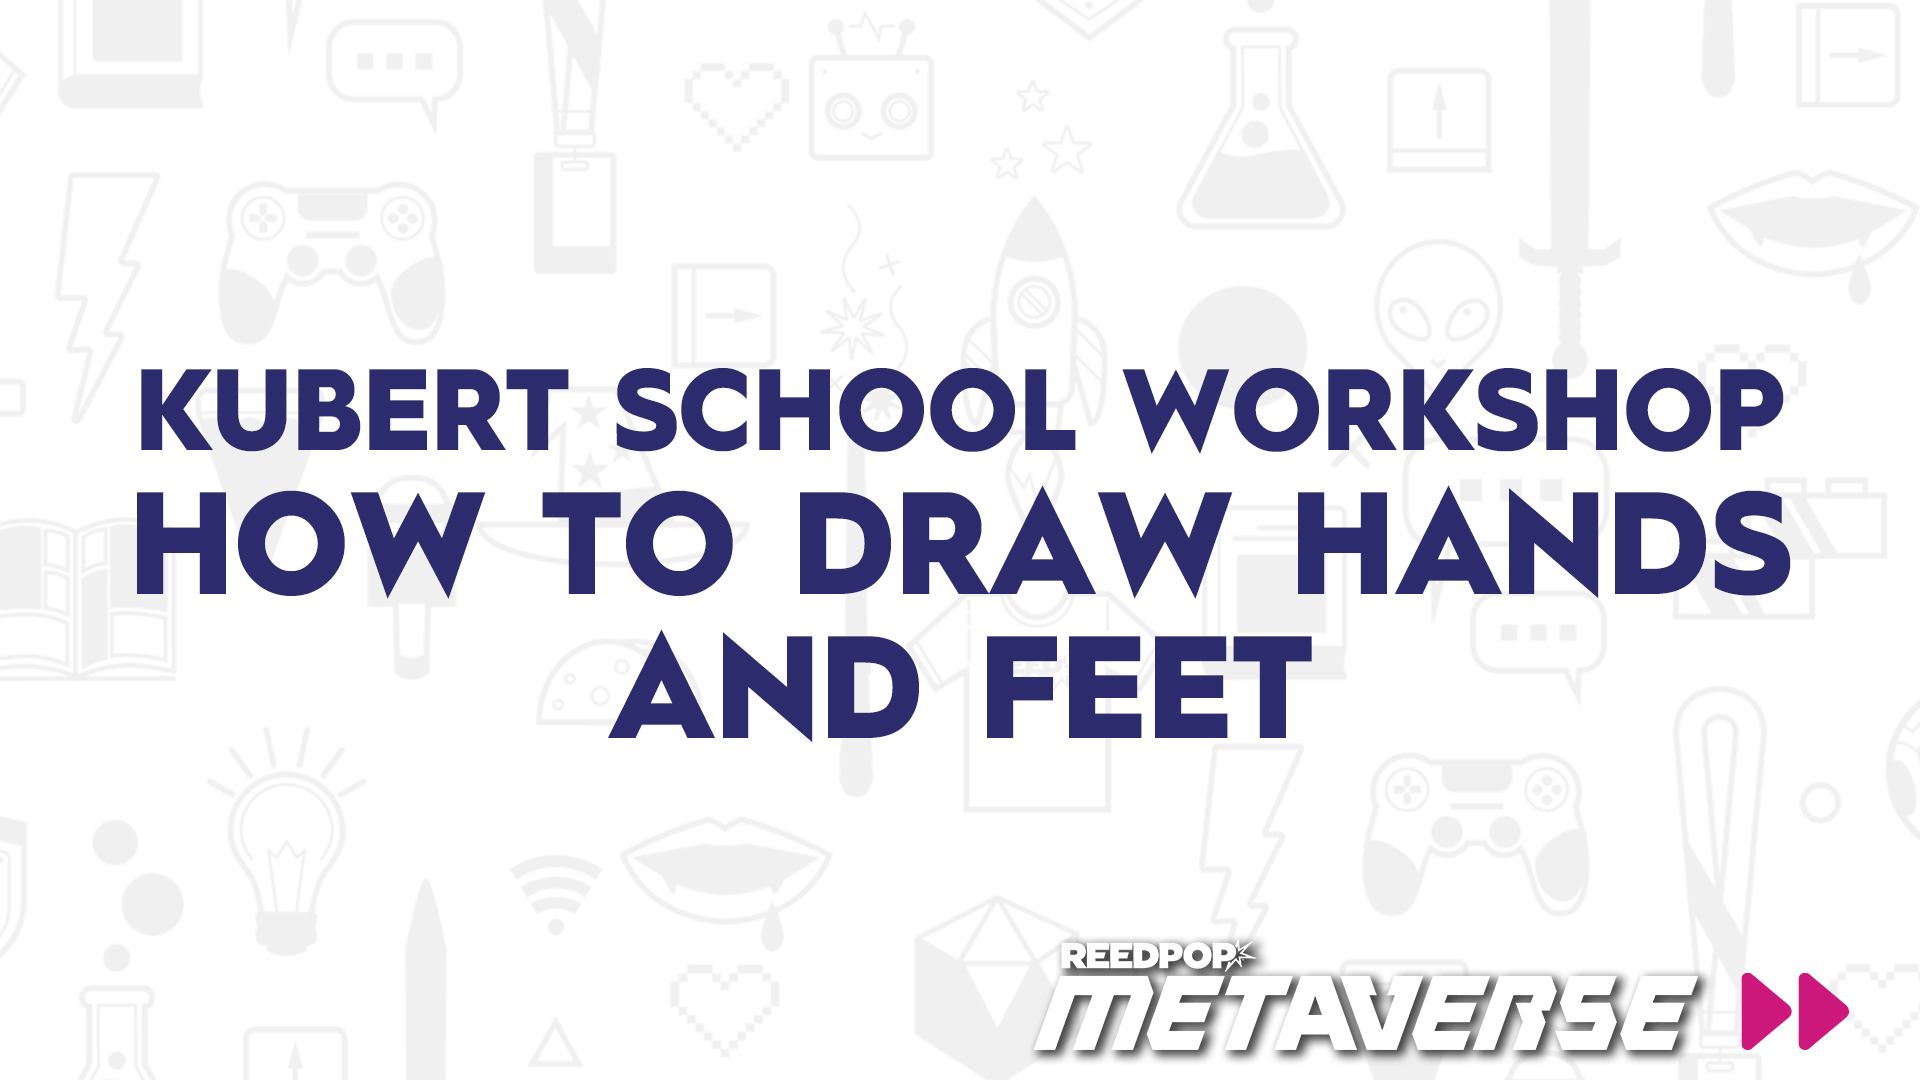 Image for Kubert School Workshop - How to Draw Hands and Feet